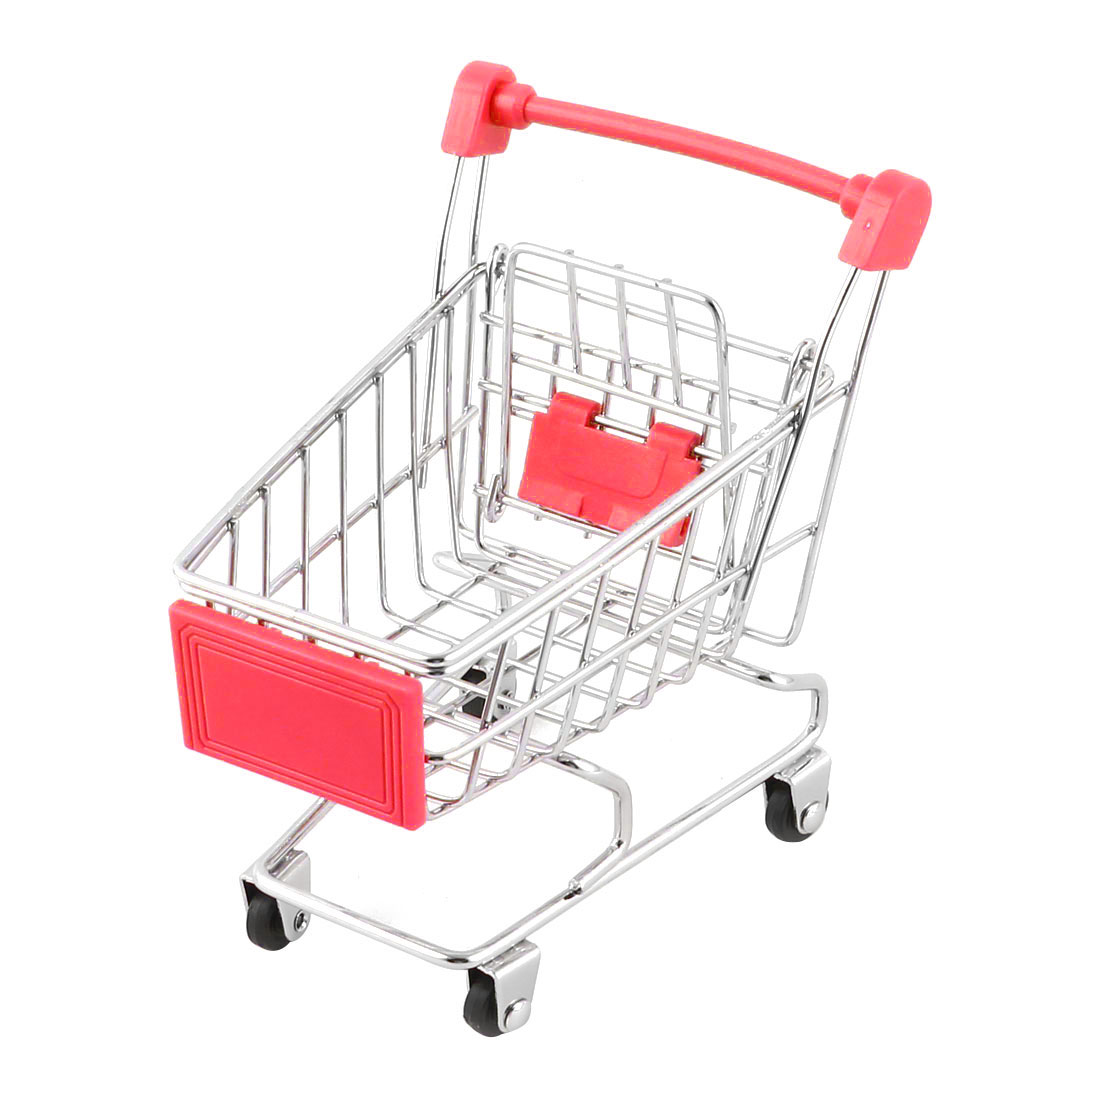 Ornament Size Household Desktop Metal  Shopping Handcart Trolly Container Cart Red